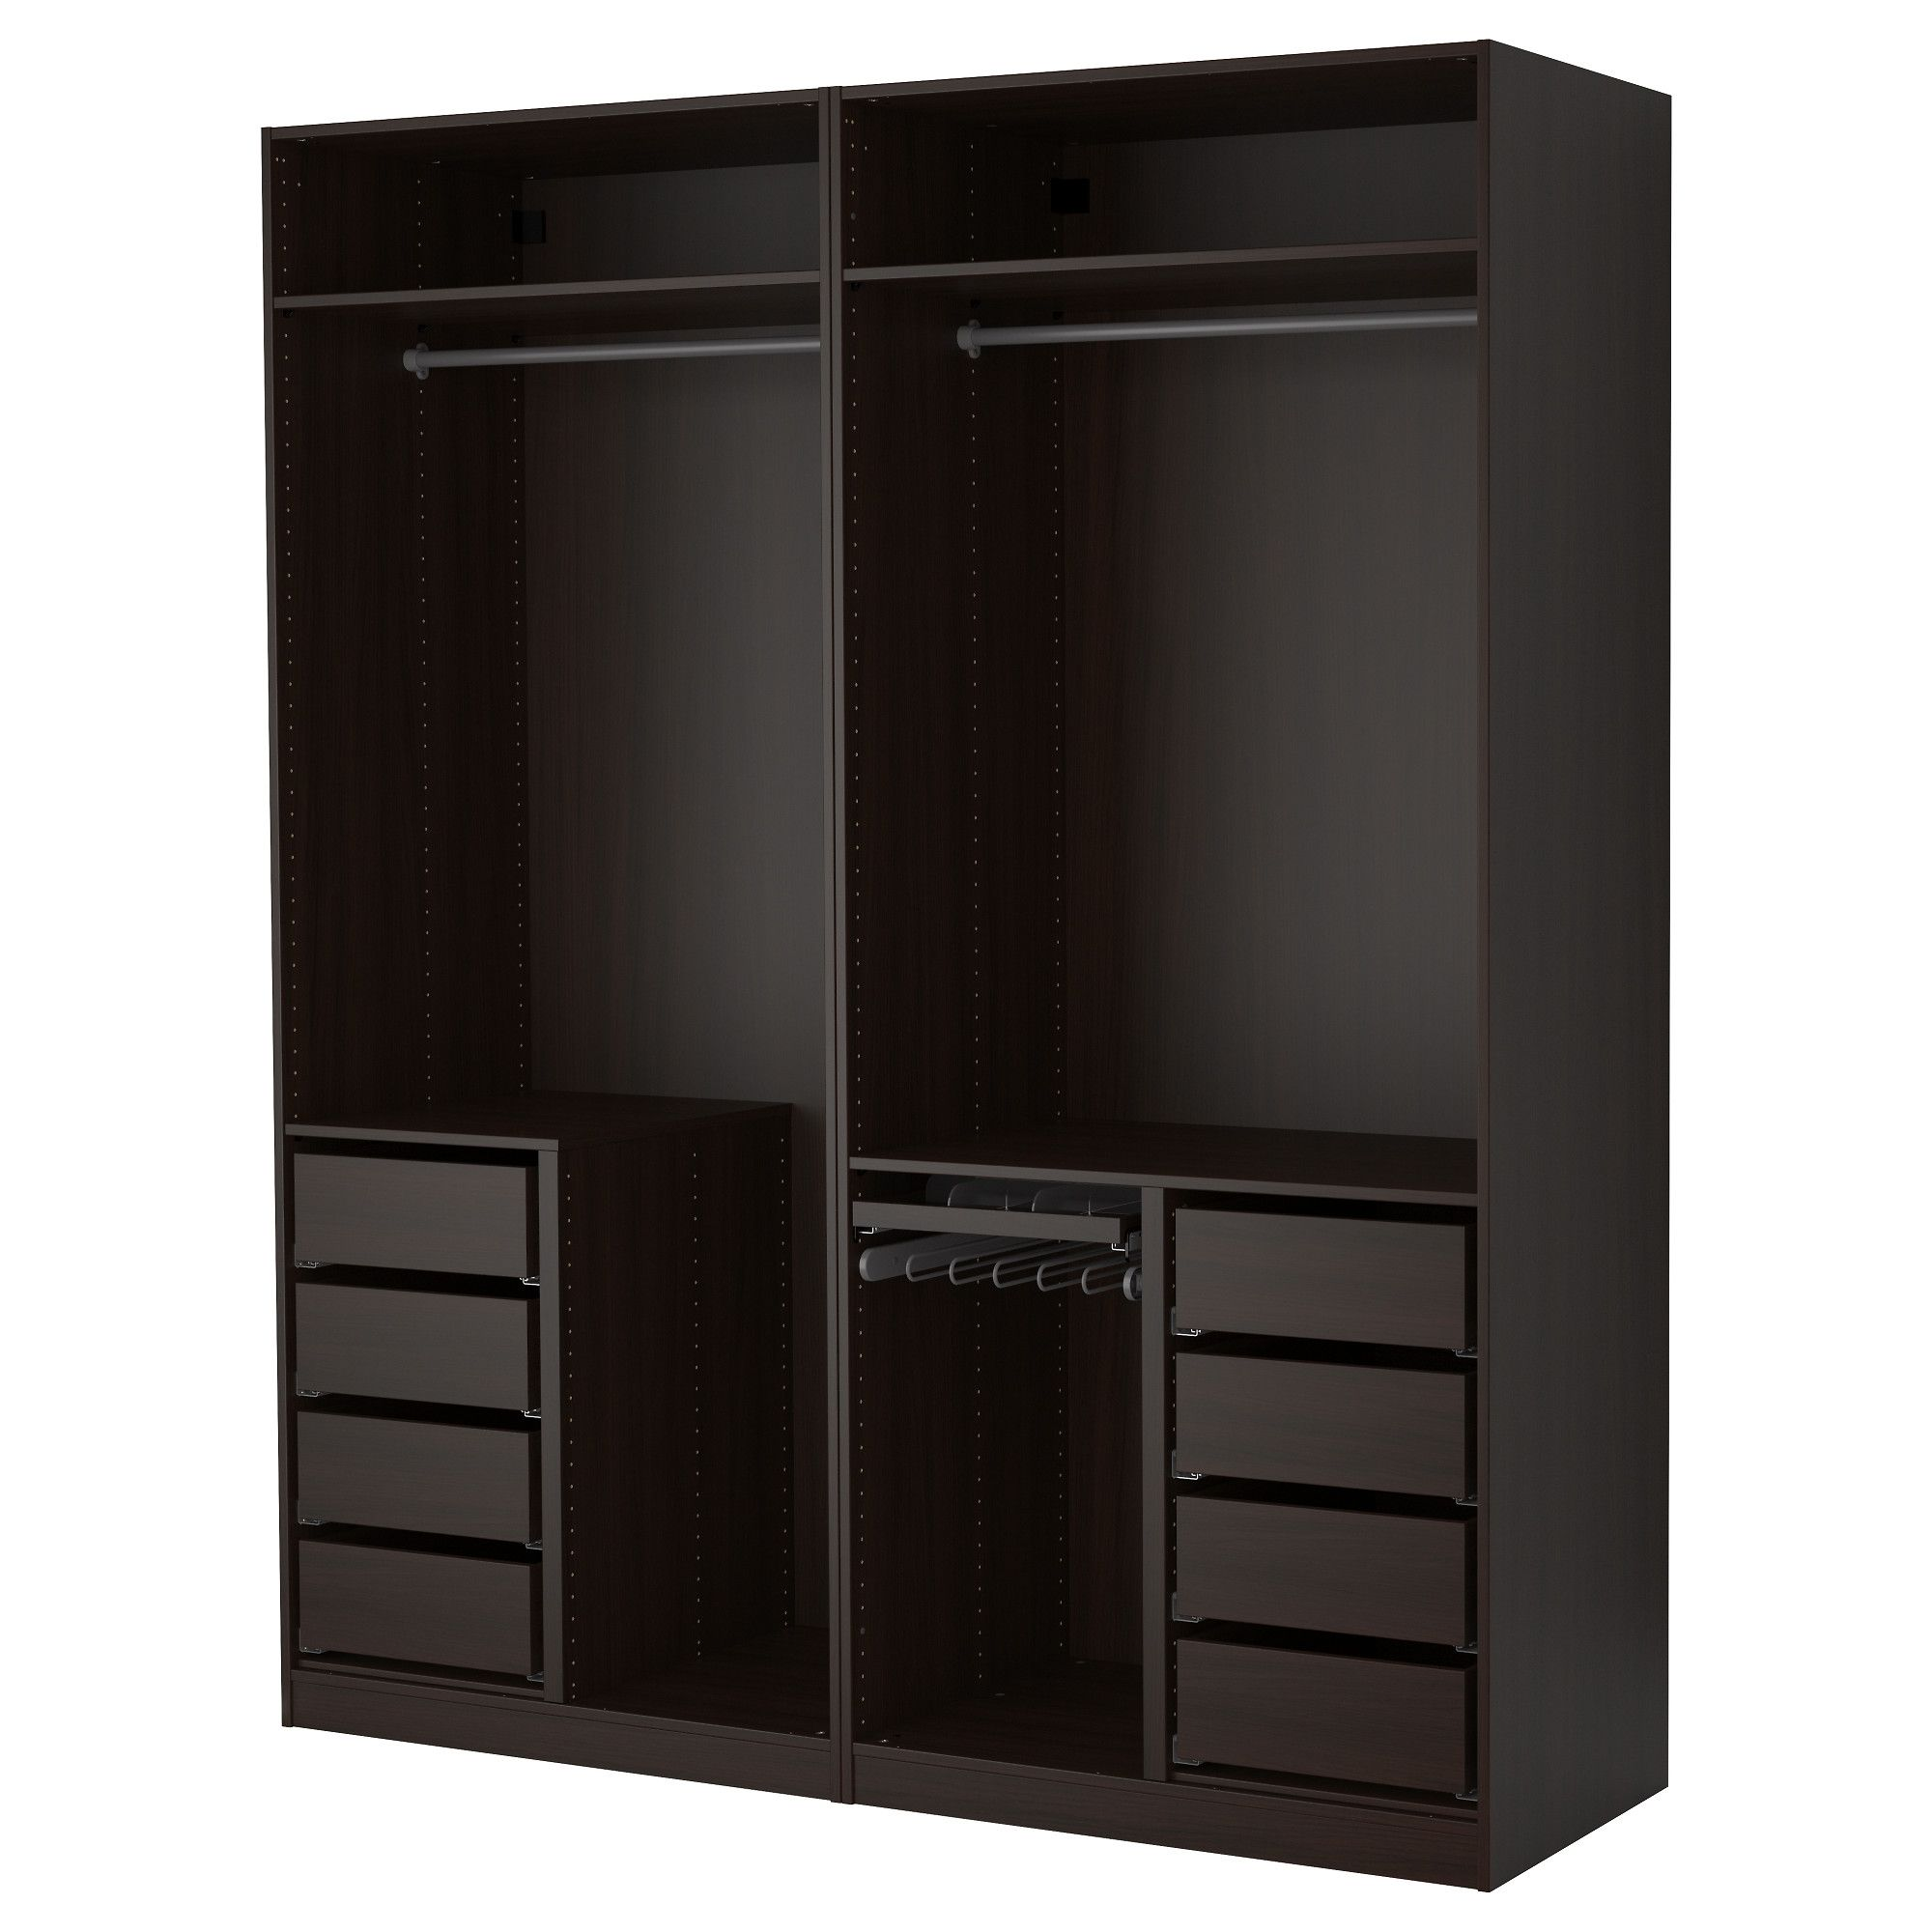 pax armoire penderie ikea dressing ouvert idee. Black Bedroom Furniture Sets. Home Design Ideas